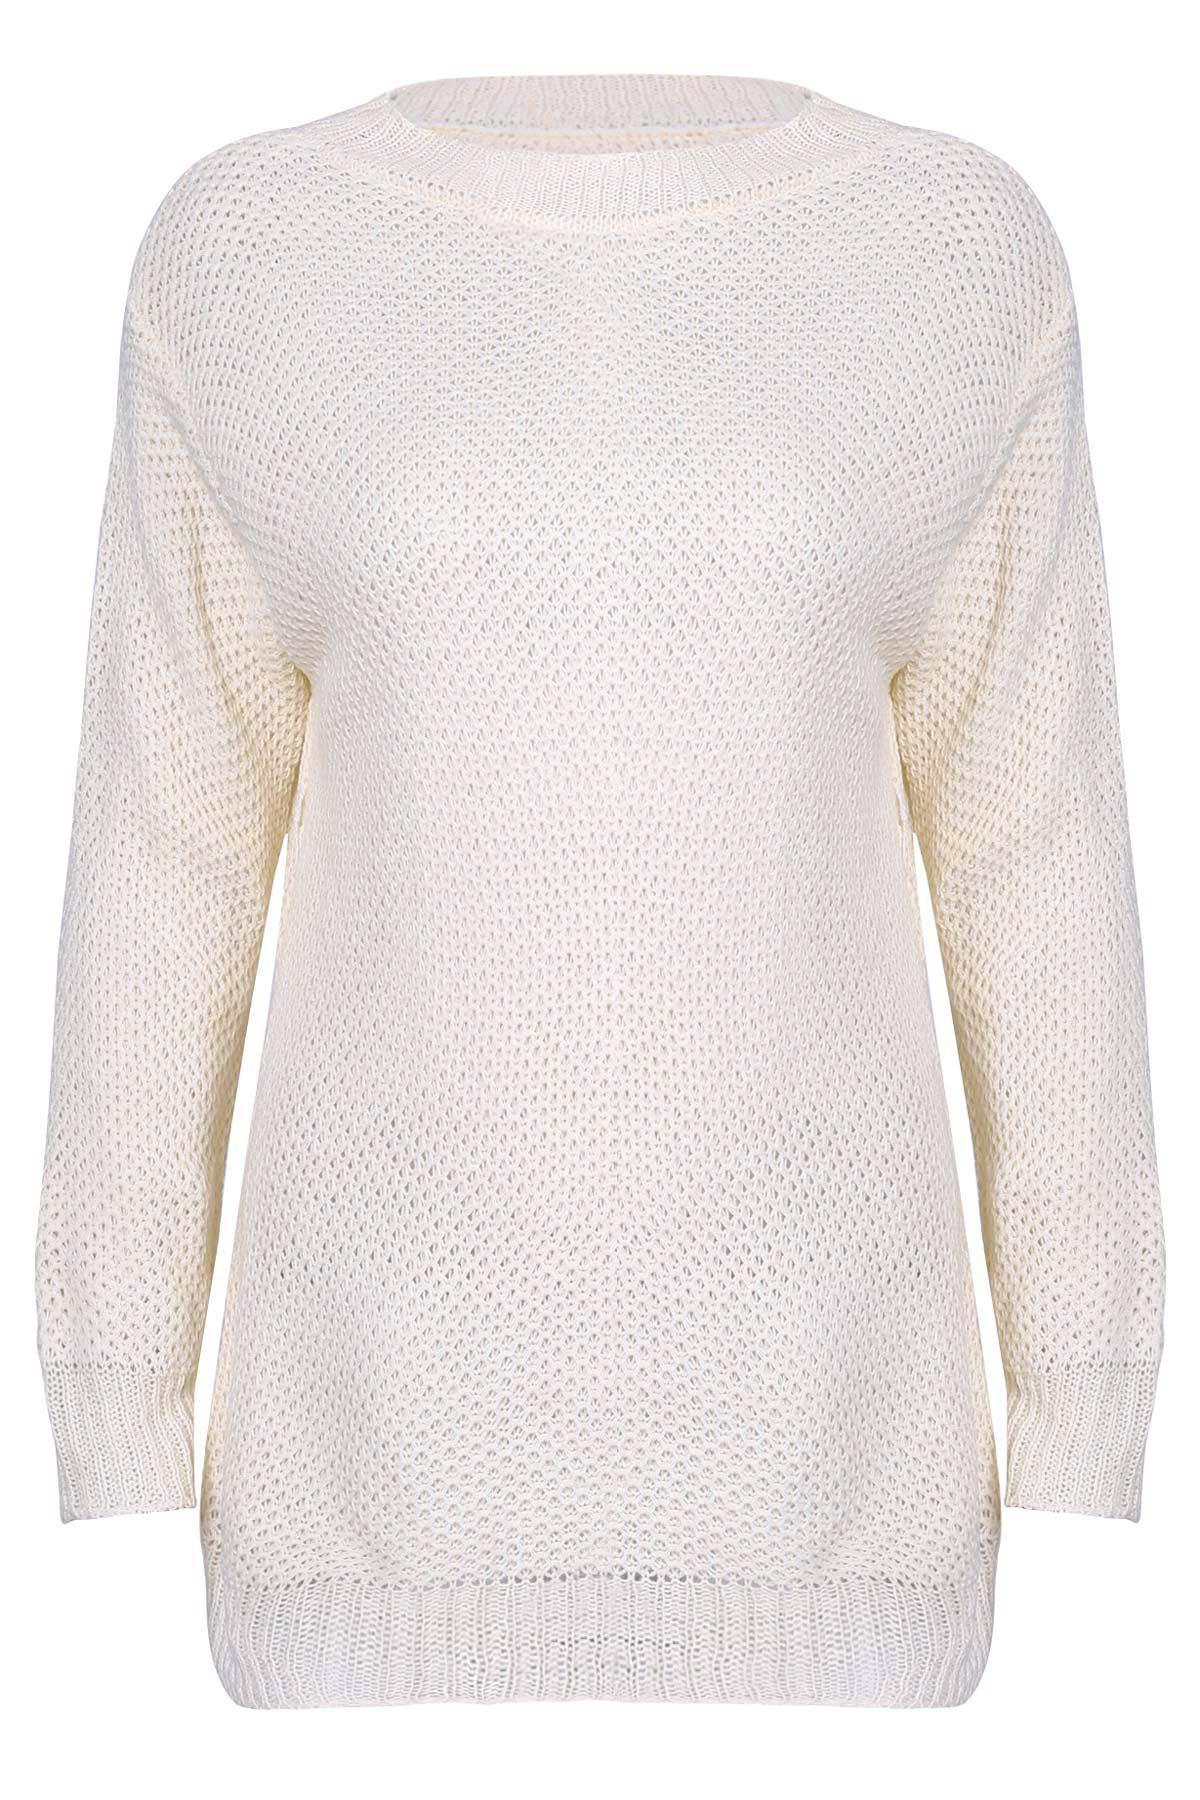 Cheap Stylish Scoop Neck Long Sleeve Solid Colour Loose-Fitting Women's Sweater